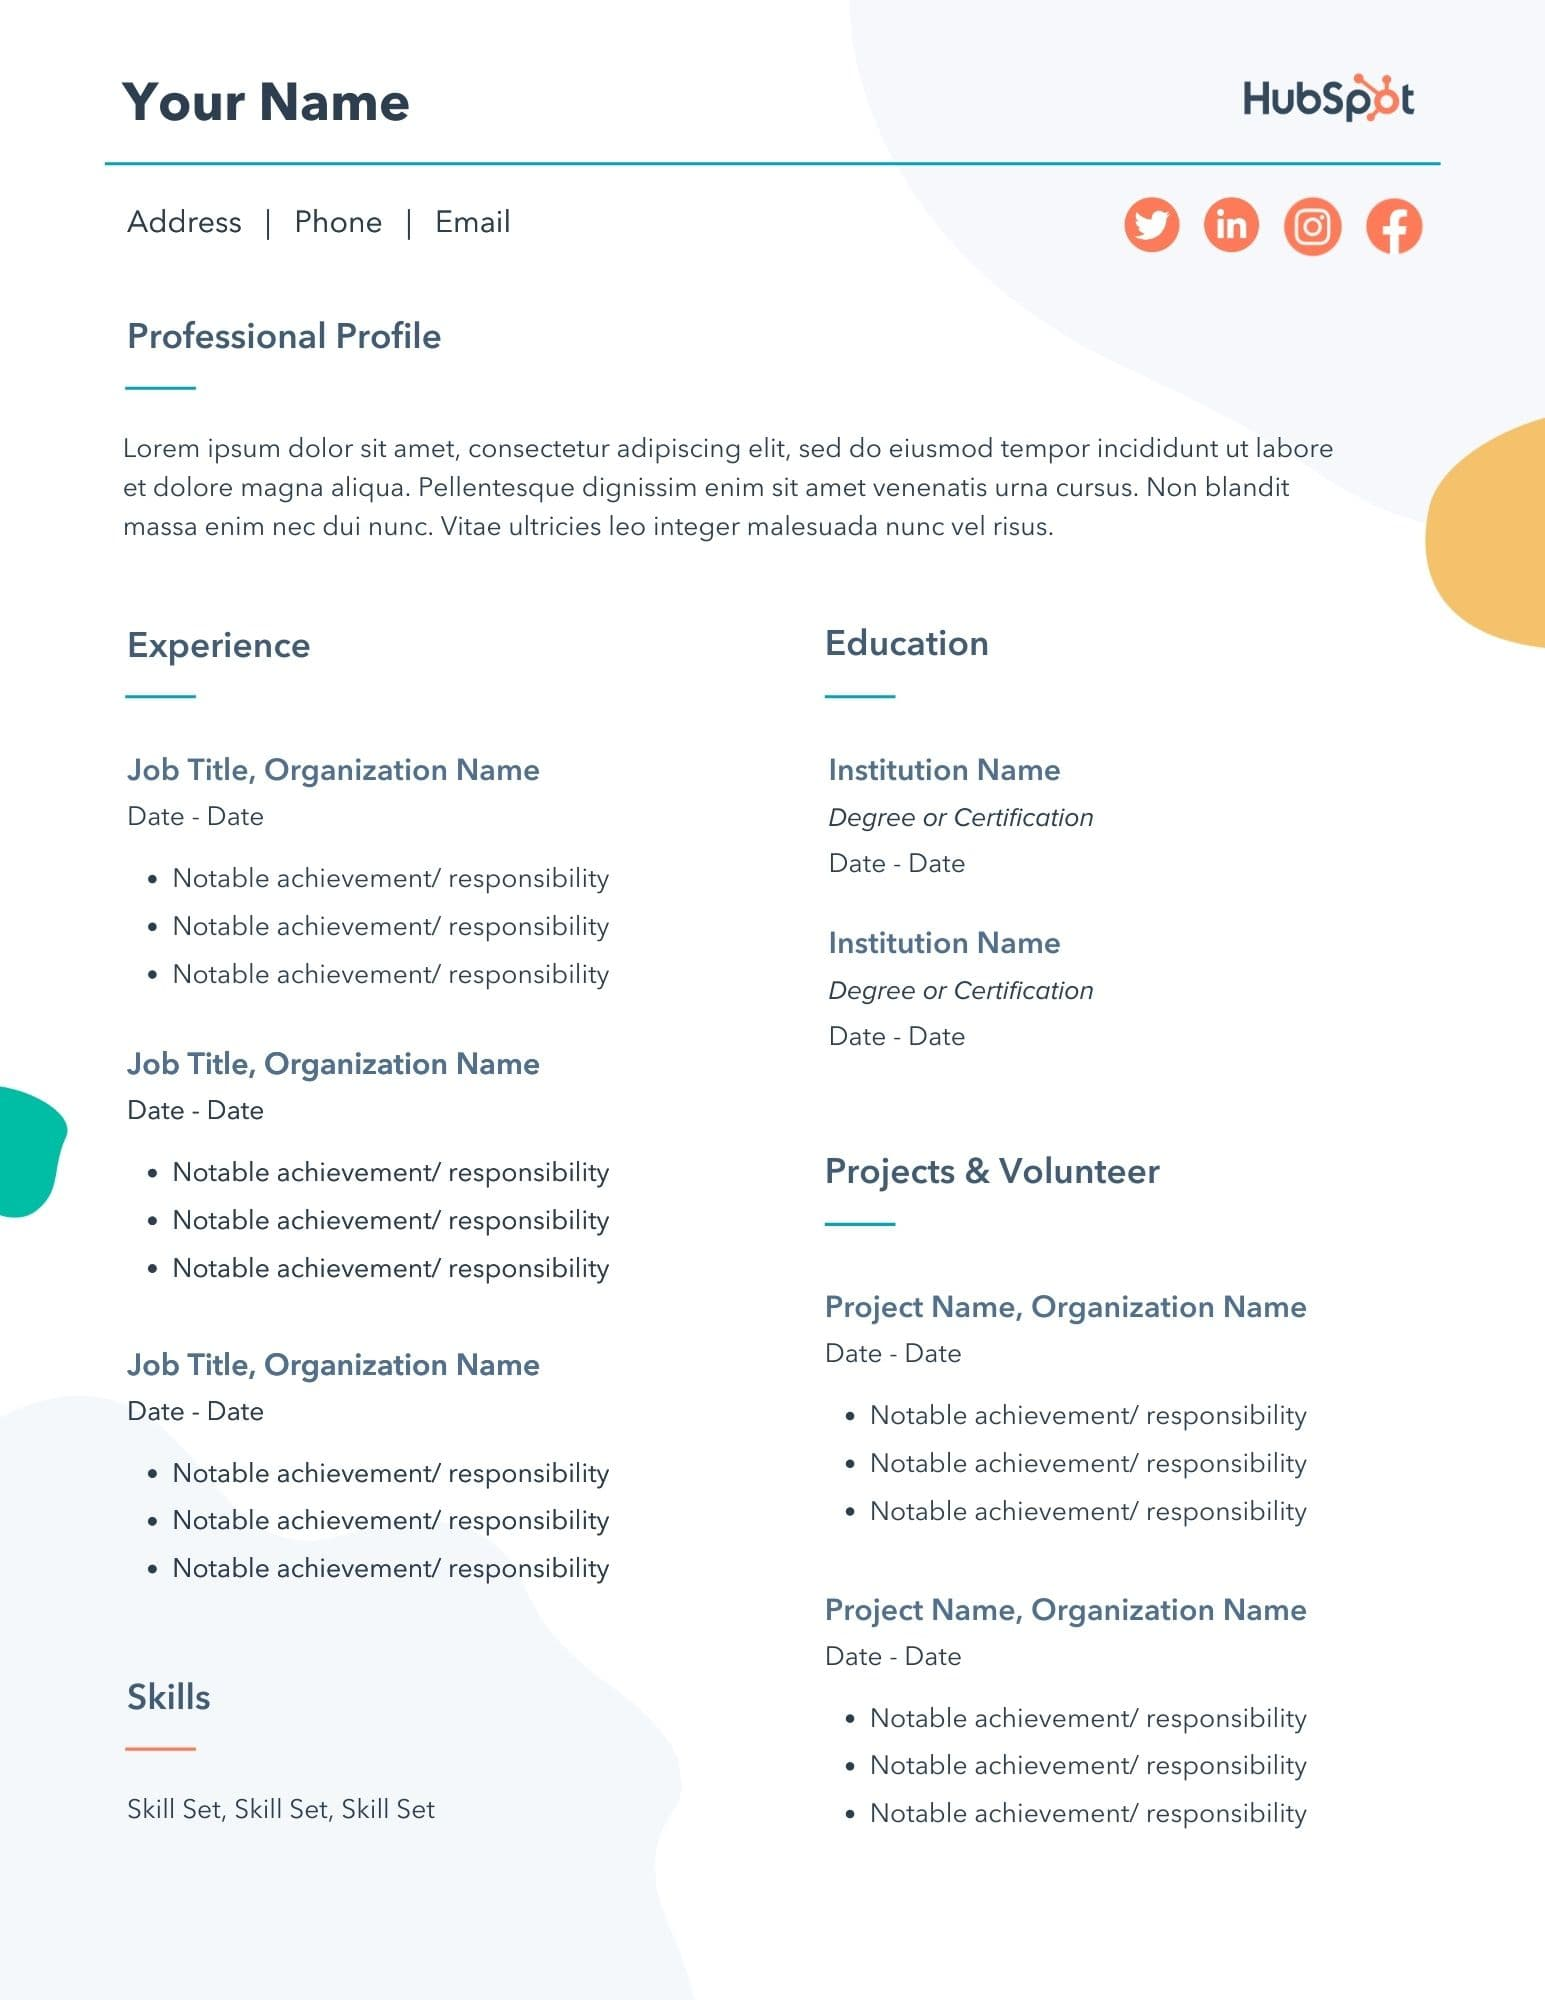 free resume templates for microsoft word to make your own the best format experienced Resume The Best Resume Format For Experienced